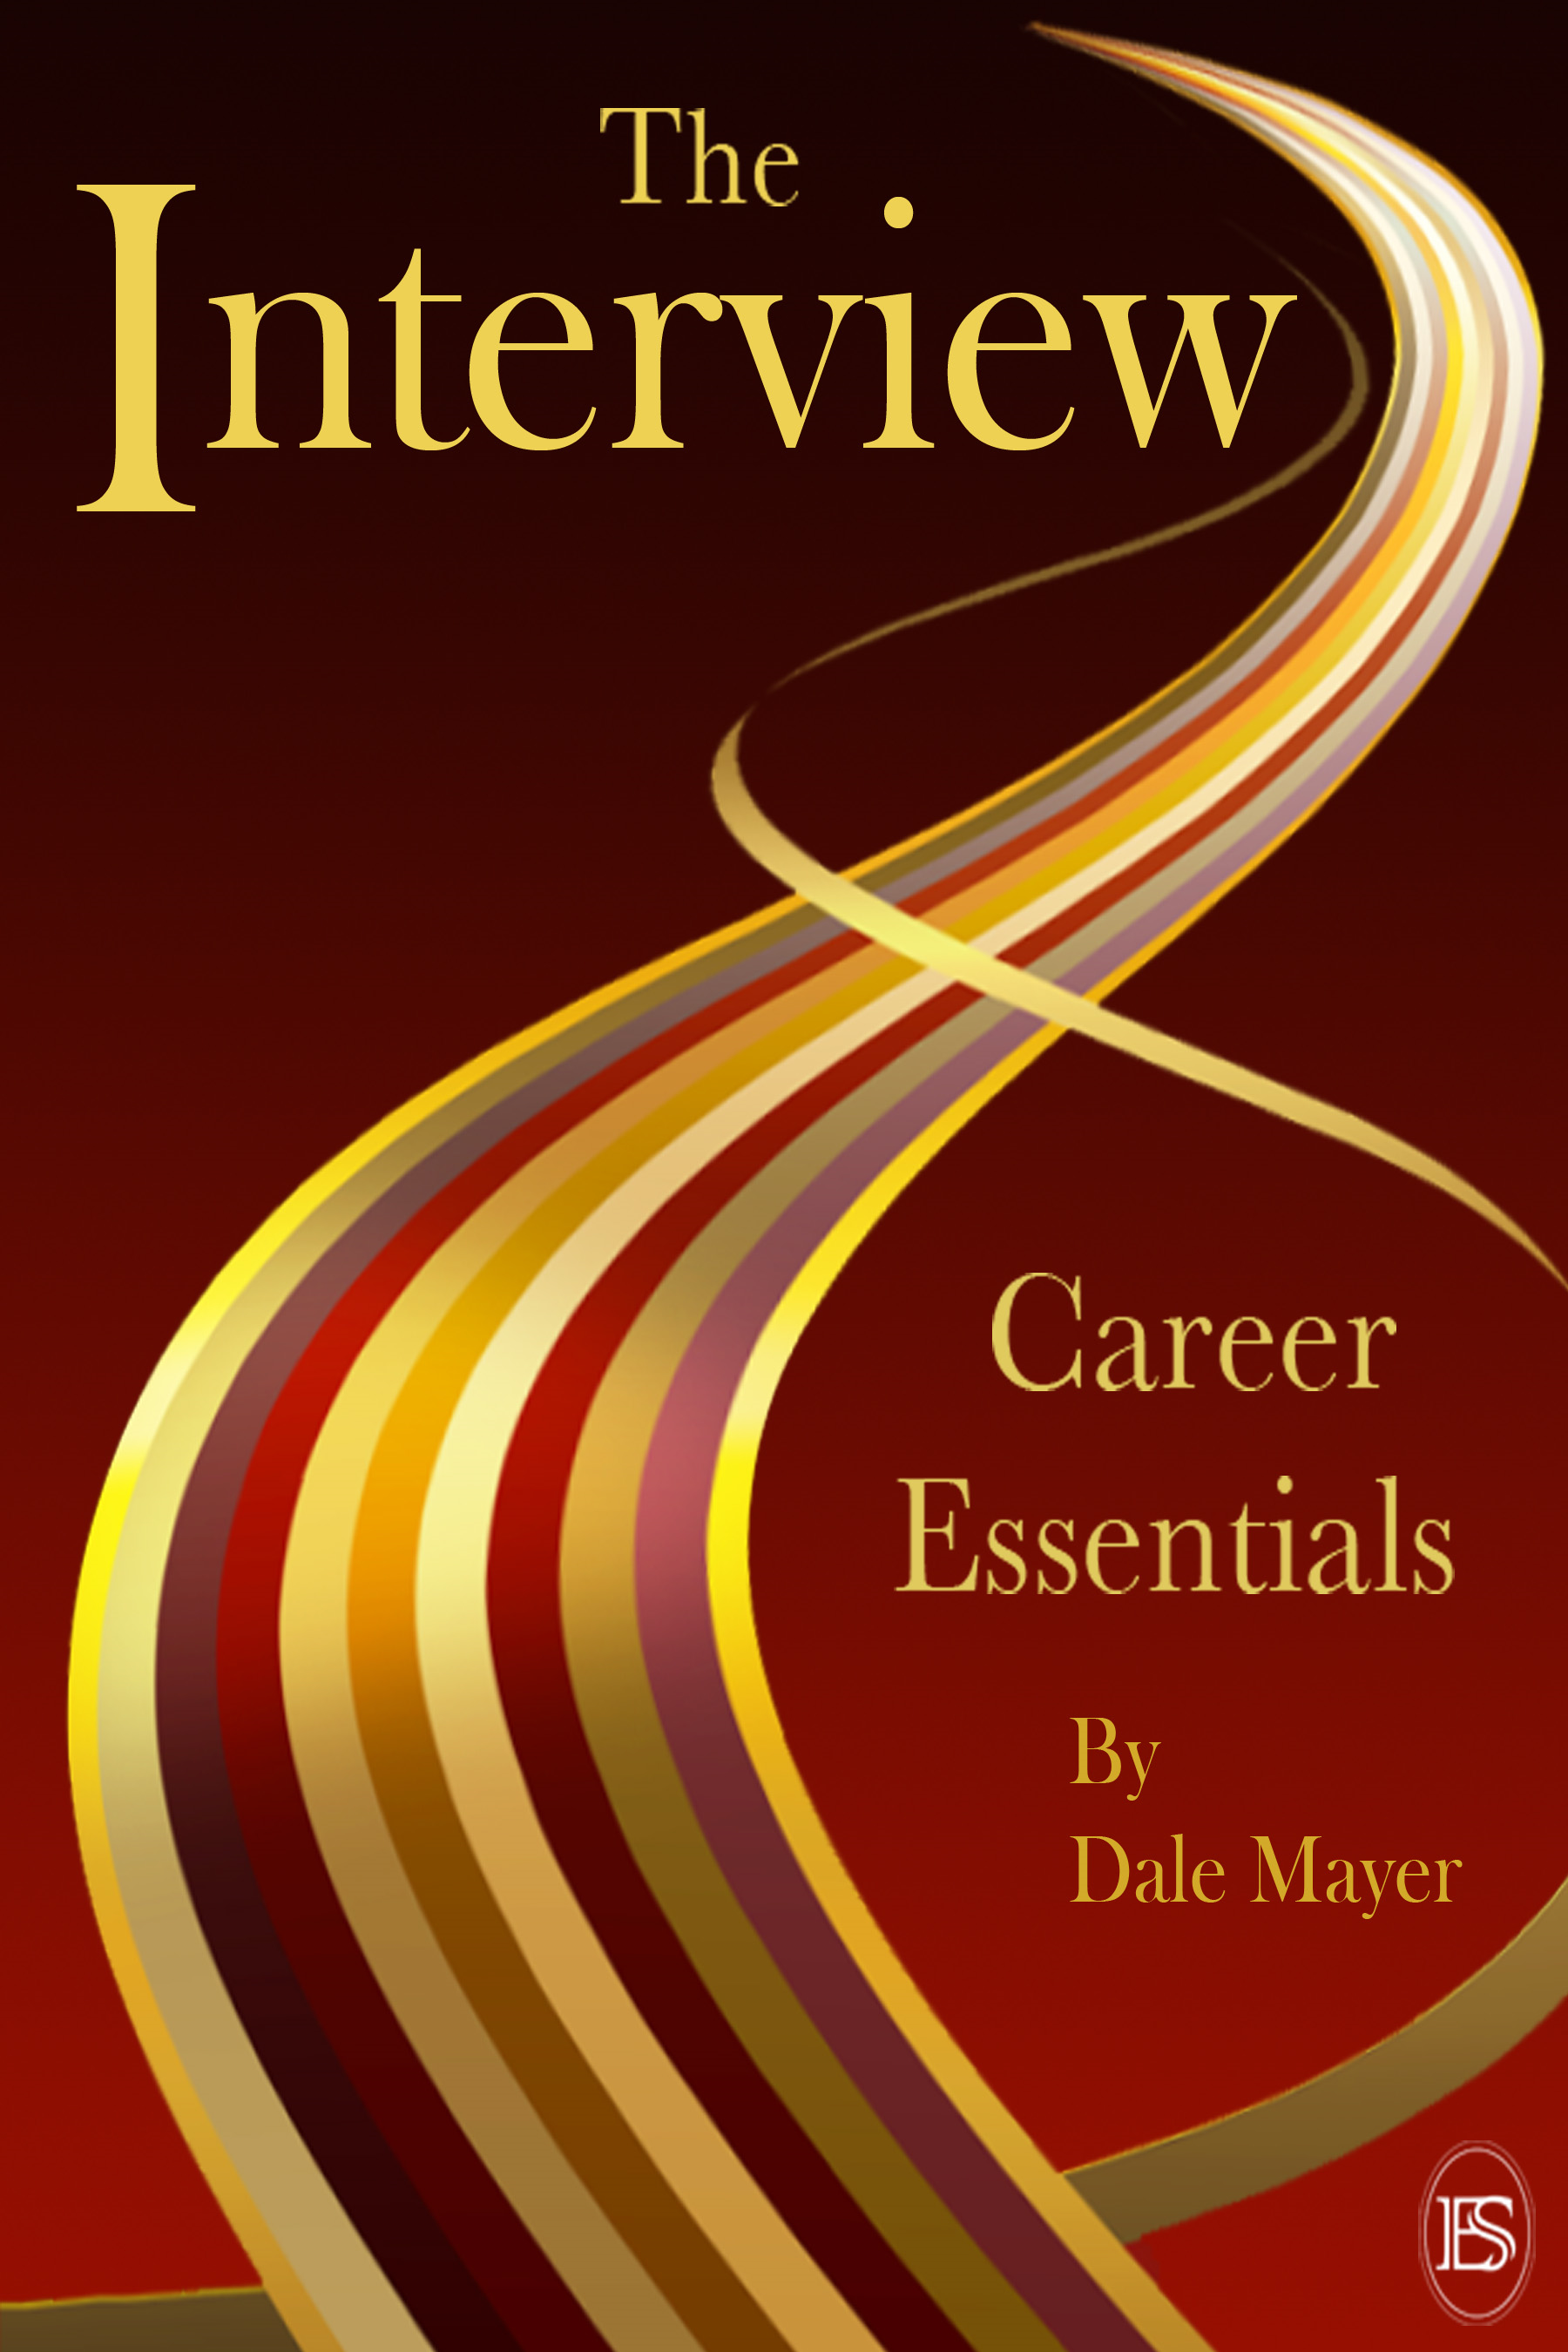 Career Essentials: The Interview By: Dale Mayer